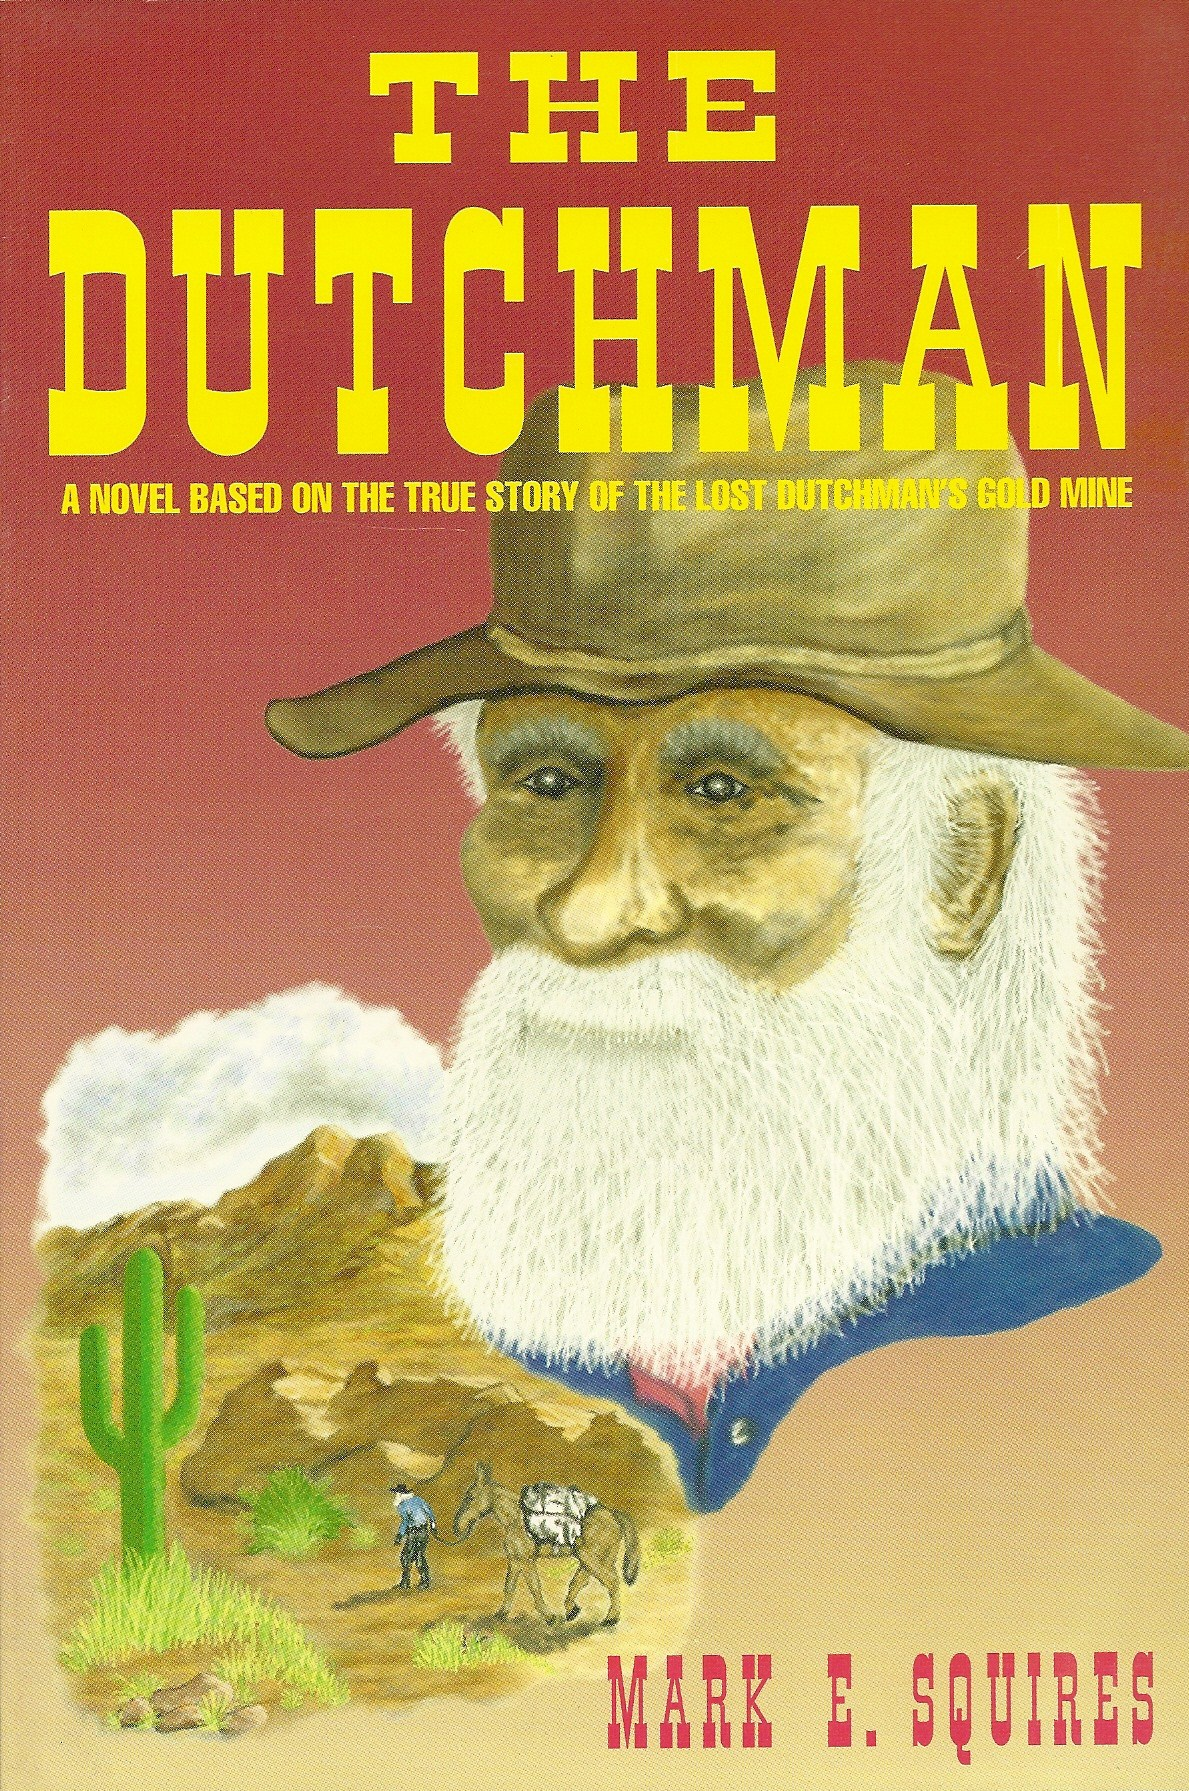 The Dutchman: A Novel Based on the True Story of the Lost Dutchman's Gold Mine cover